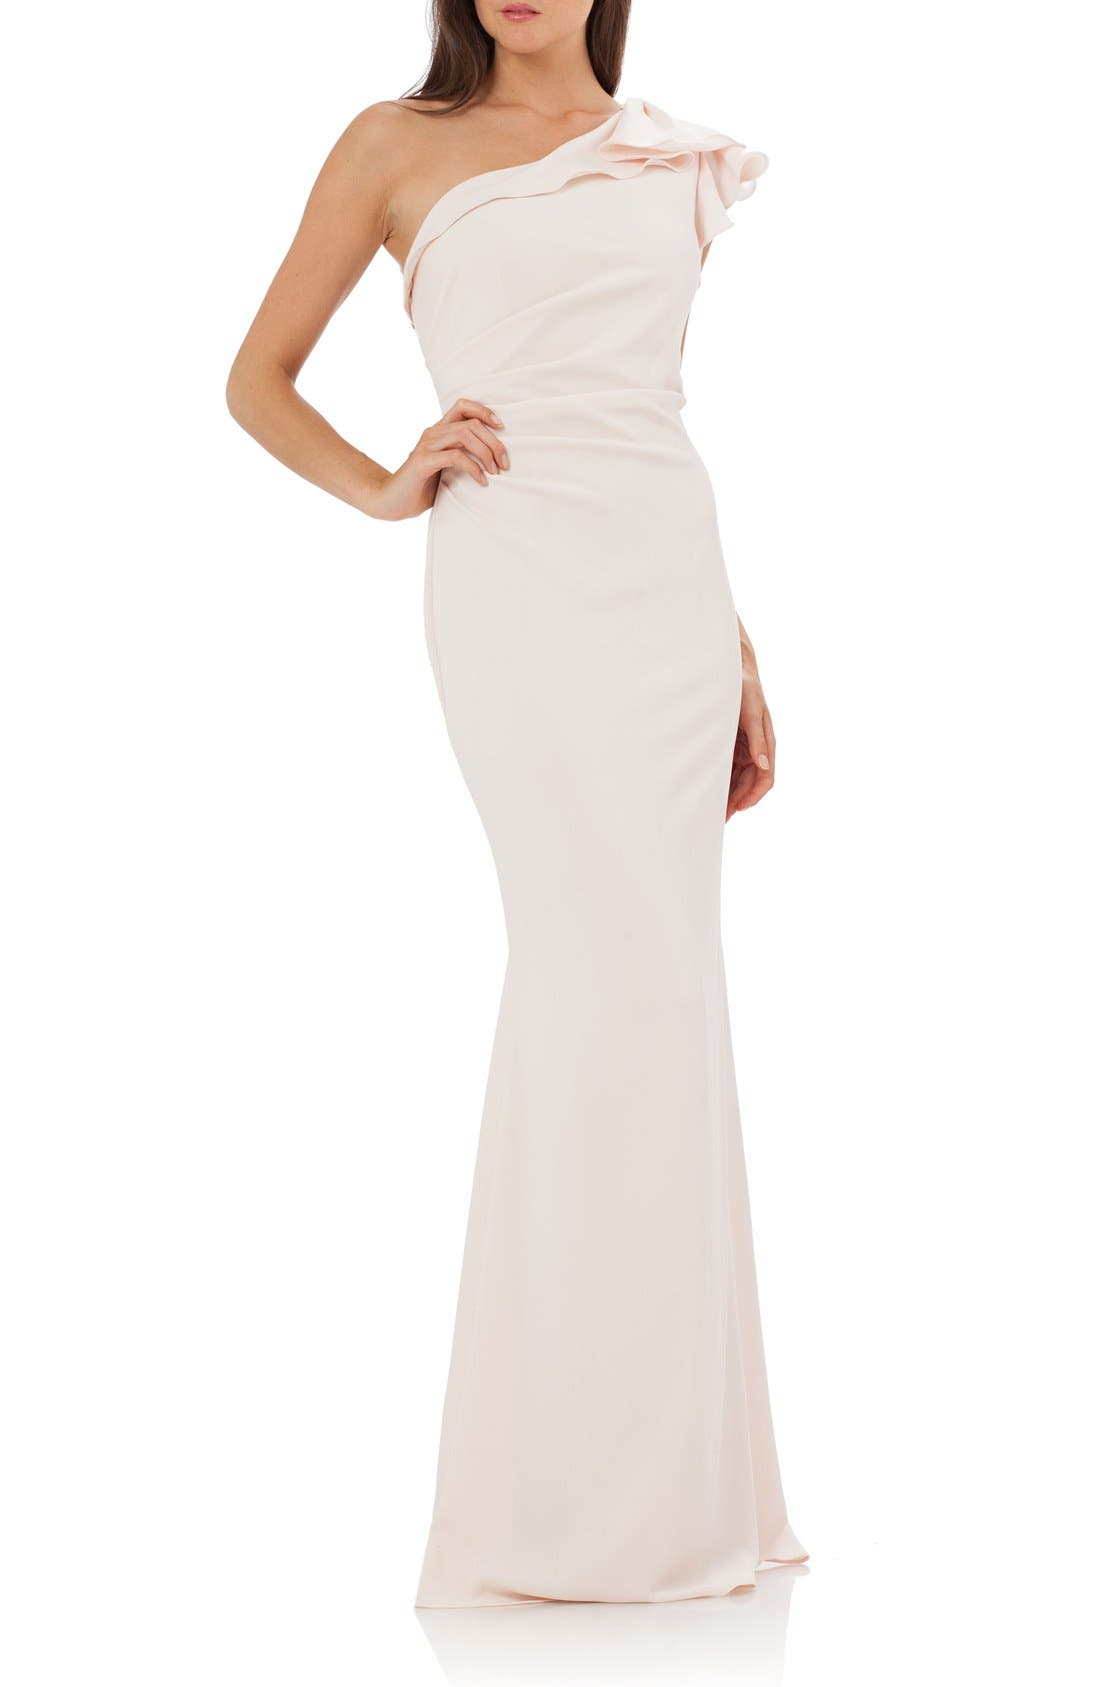 Alternate Image 1 Selected - Carmen Marc Valvo Infusion One-Shoulder Gown